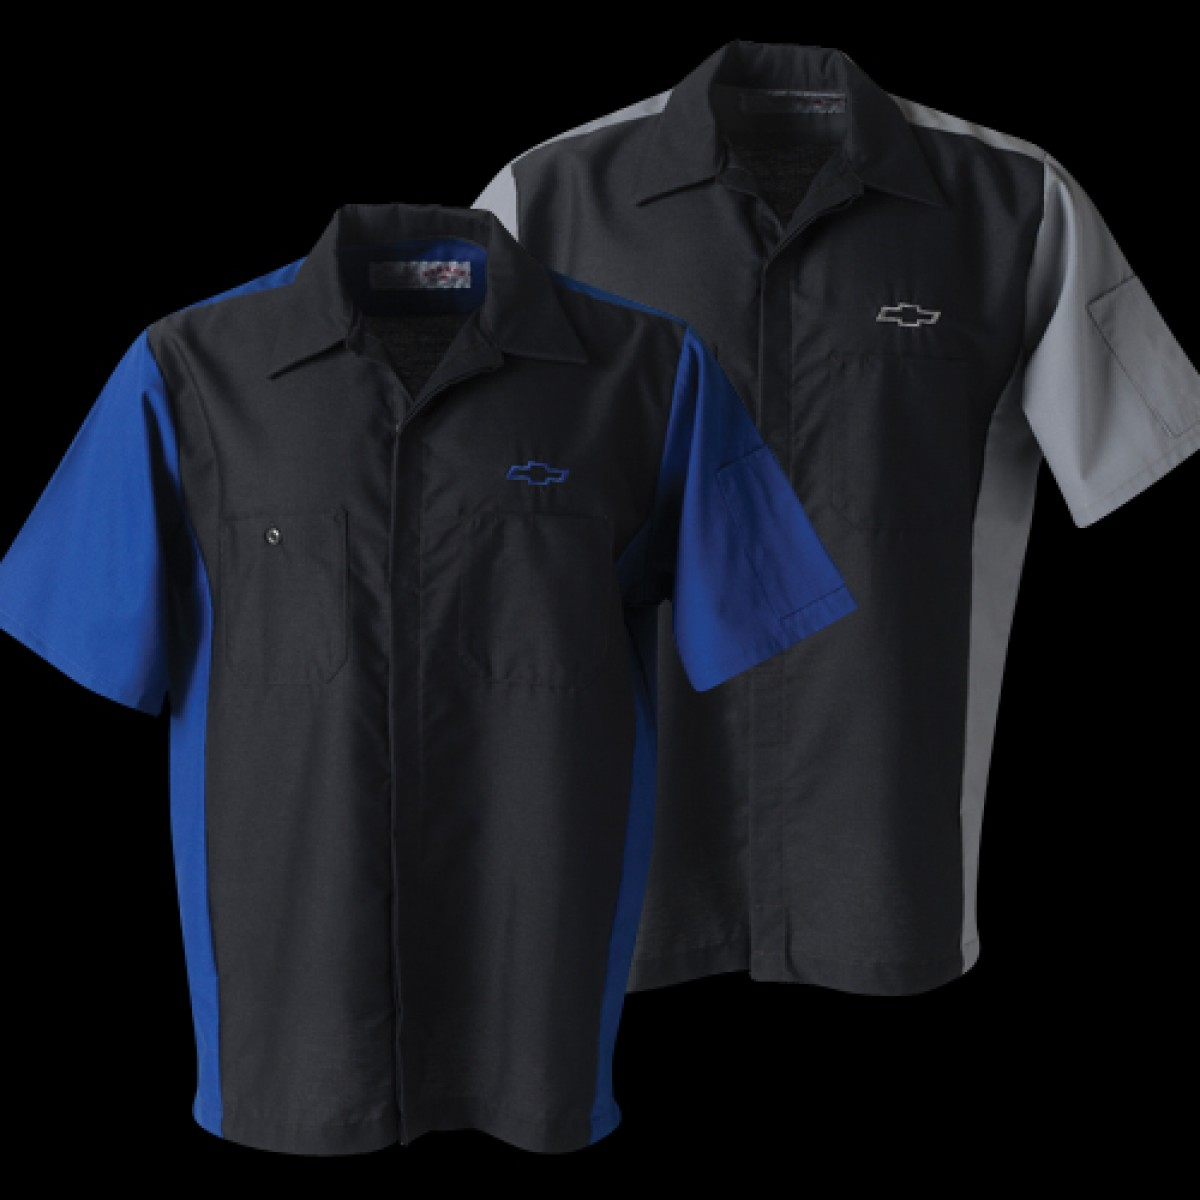 Hossrods Chevy Work Shirt With Chevy Bowtie Hot Rod